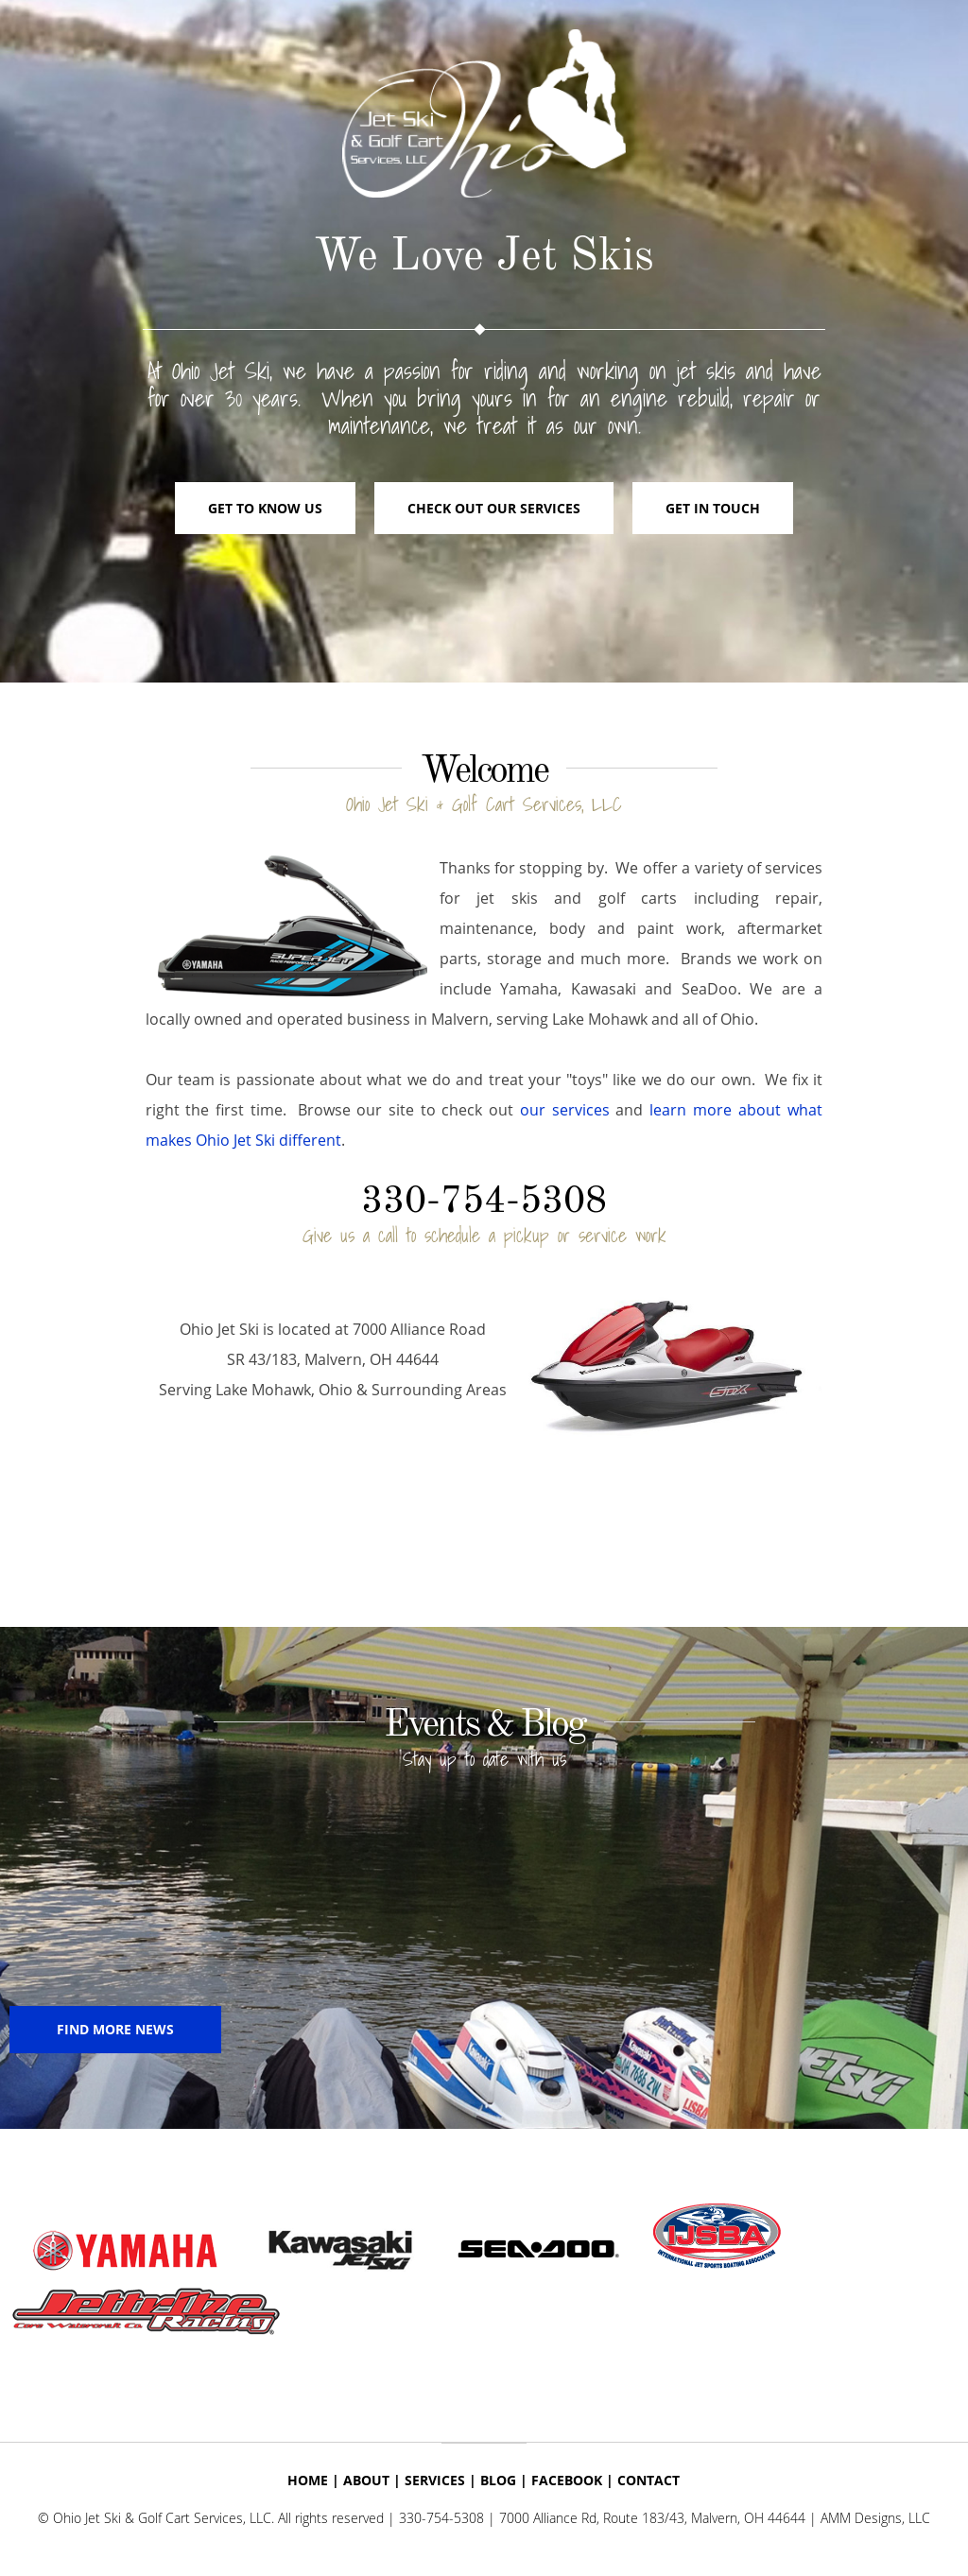 Ohio Jet Ski & Golf Cart Services Competitors, Revenue and Employees